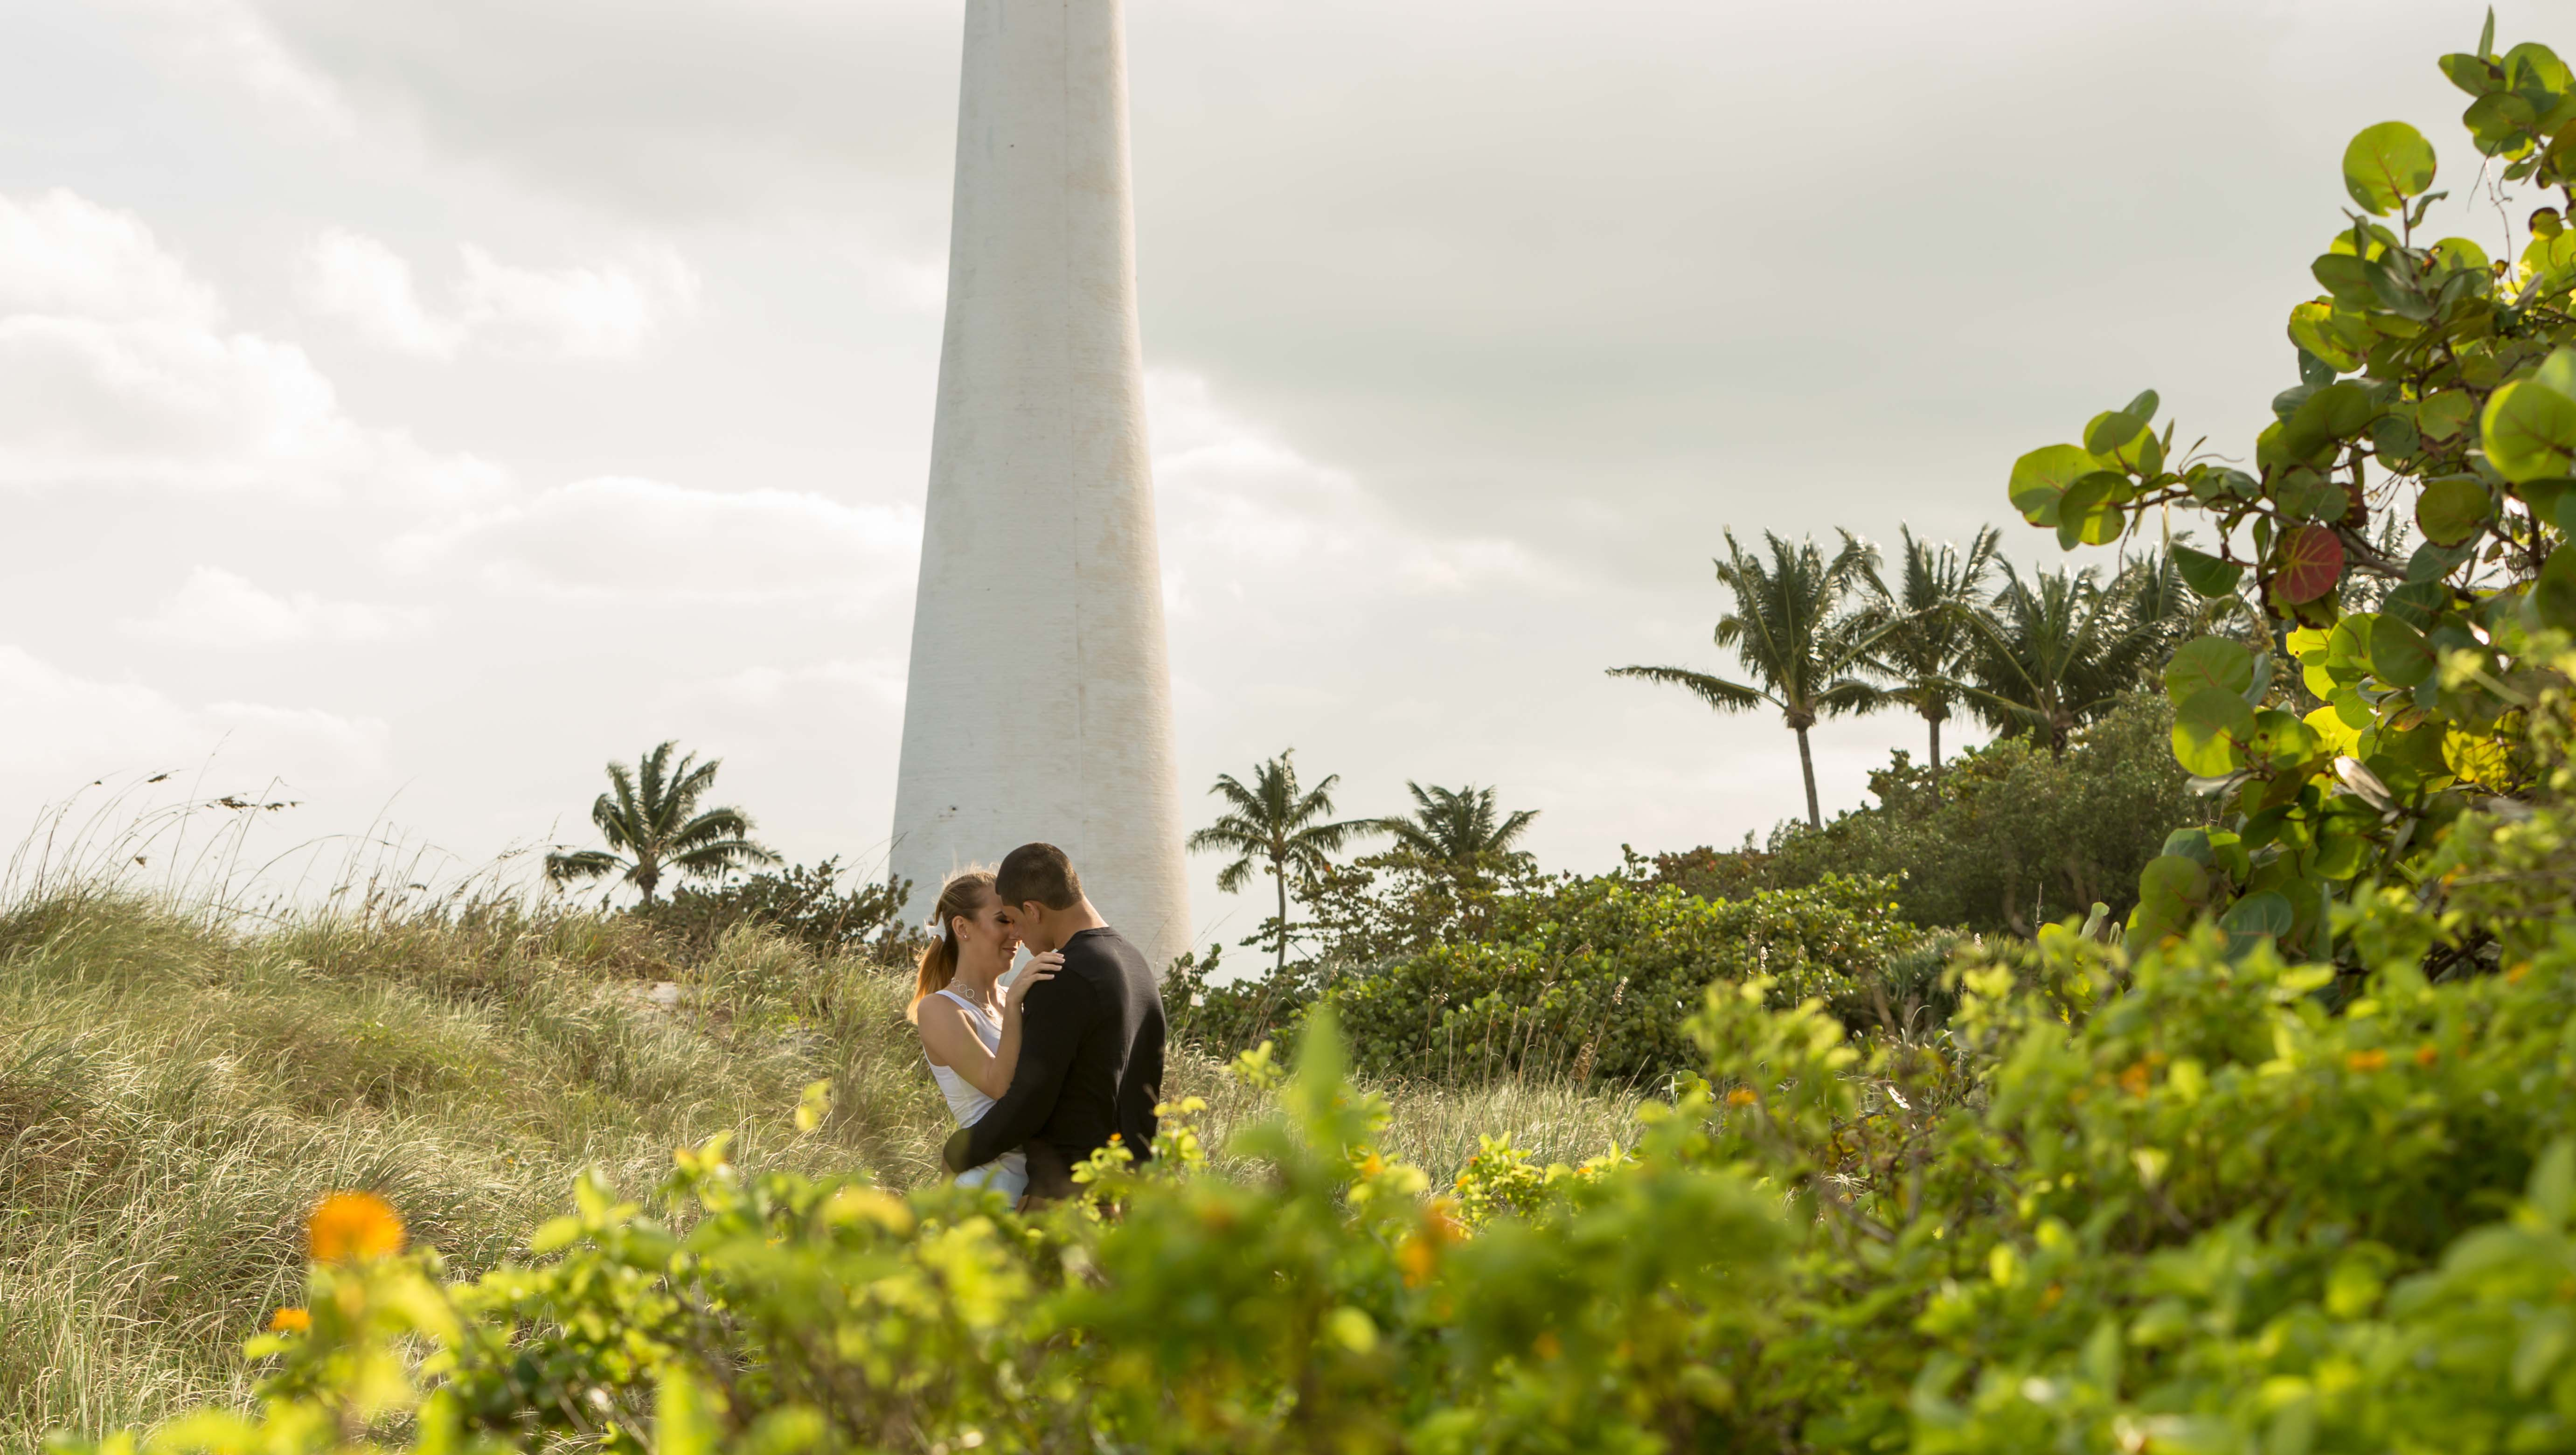 Key Biscayne Engagement session at the Key Biscayne Lighthouse in Key Biscayne Florida